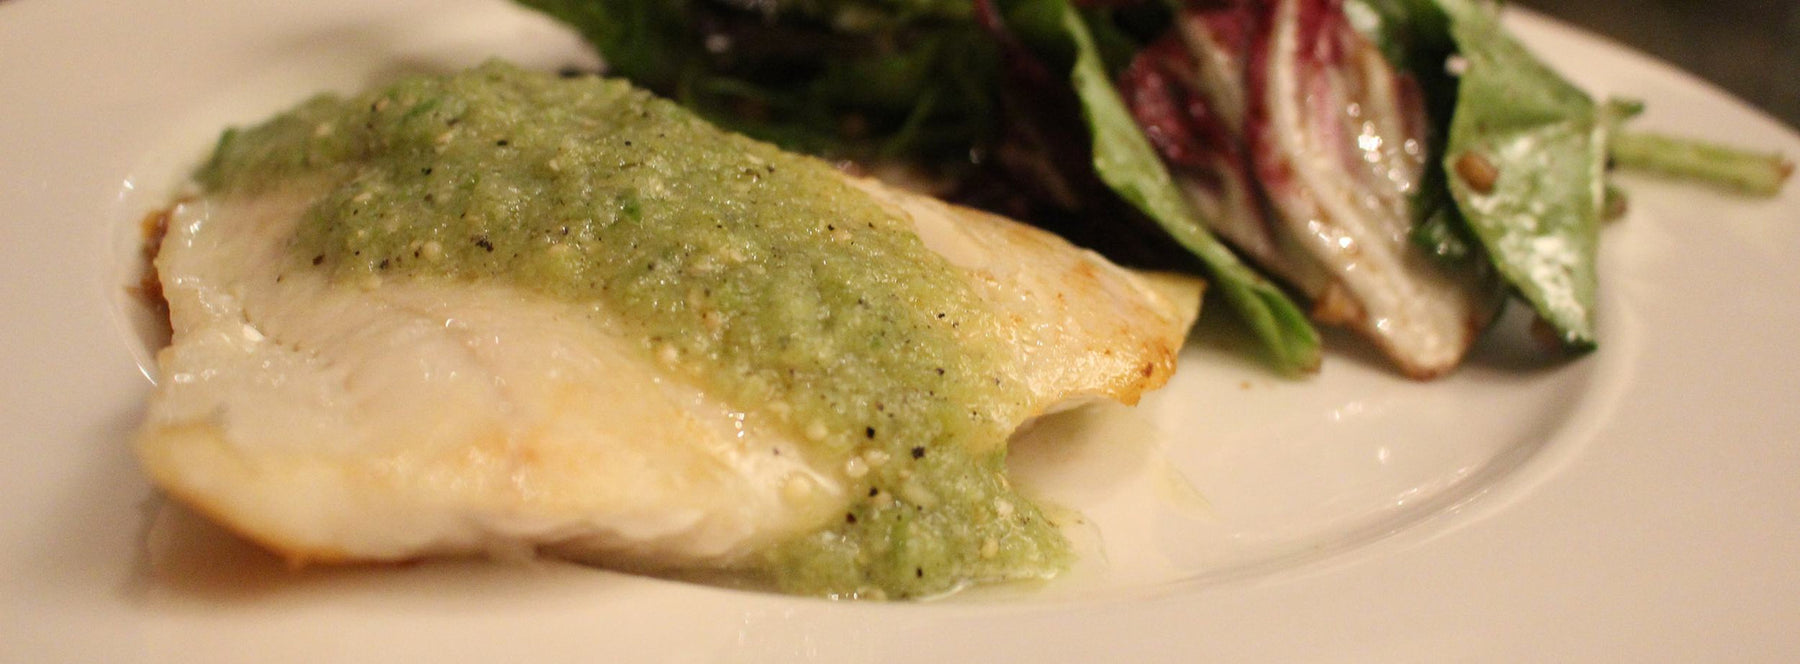 Pacific Cod in Tomatillo Sauce Recipe